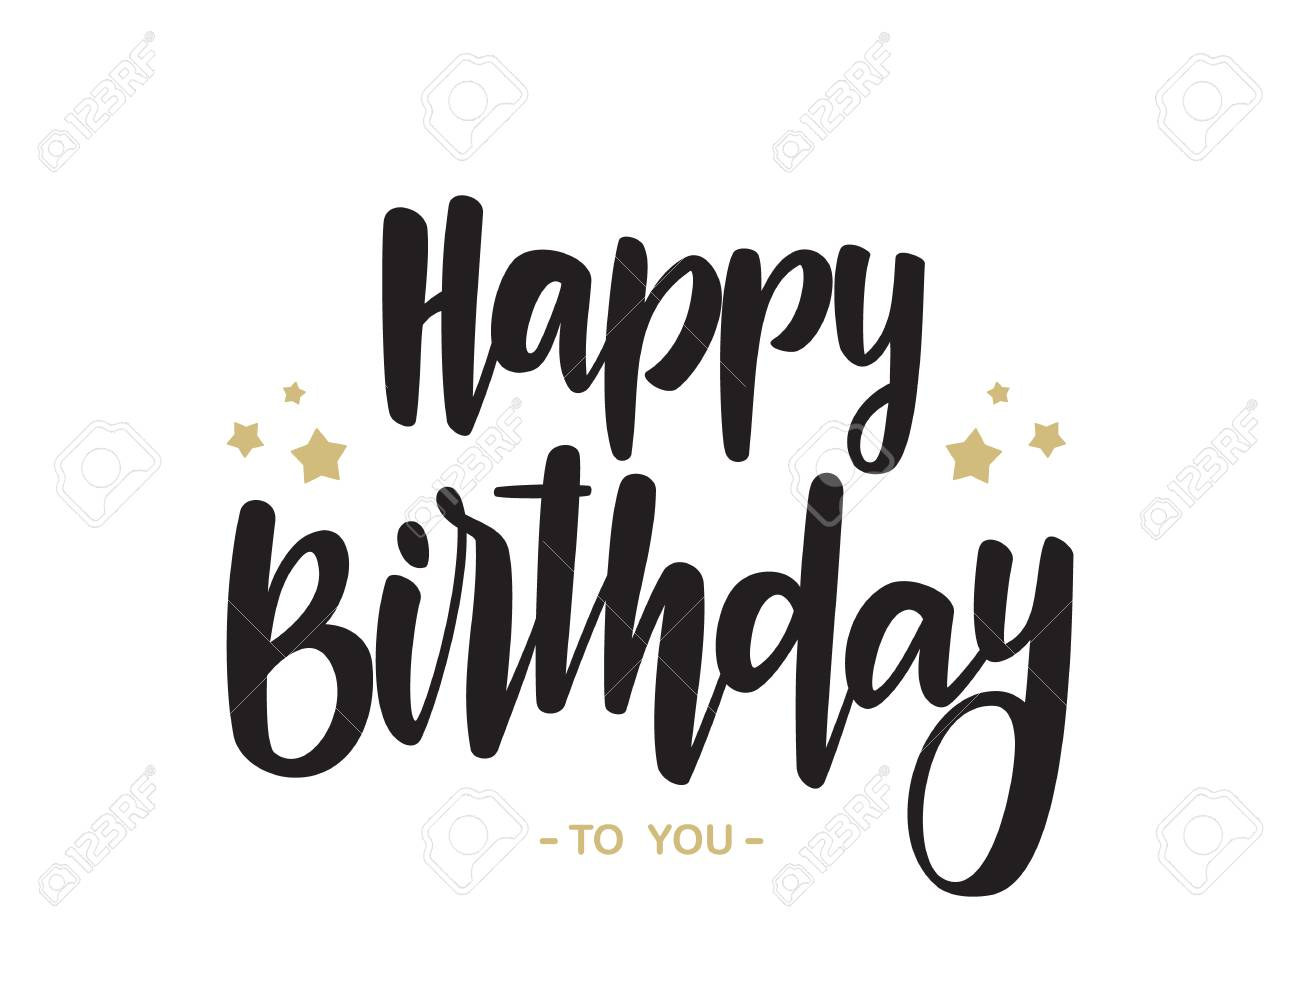 Handwritten Type Lettering Of Happy Birthday To You On White Royalty Free Cliparts Vectors And Stock Illustration Image 94689075